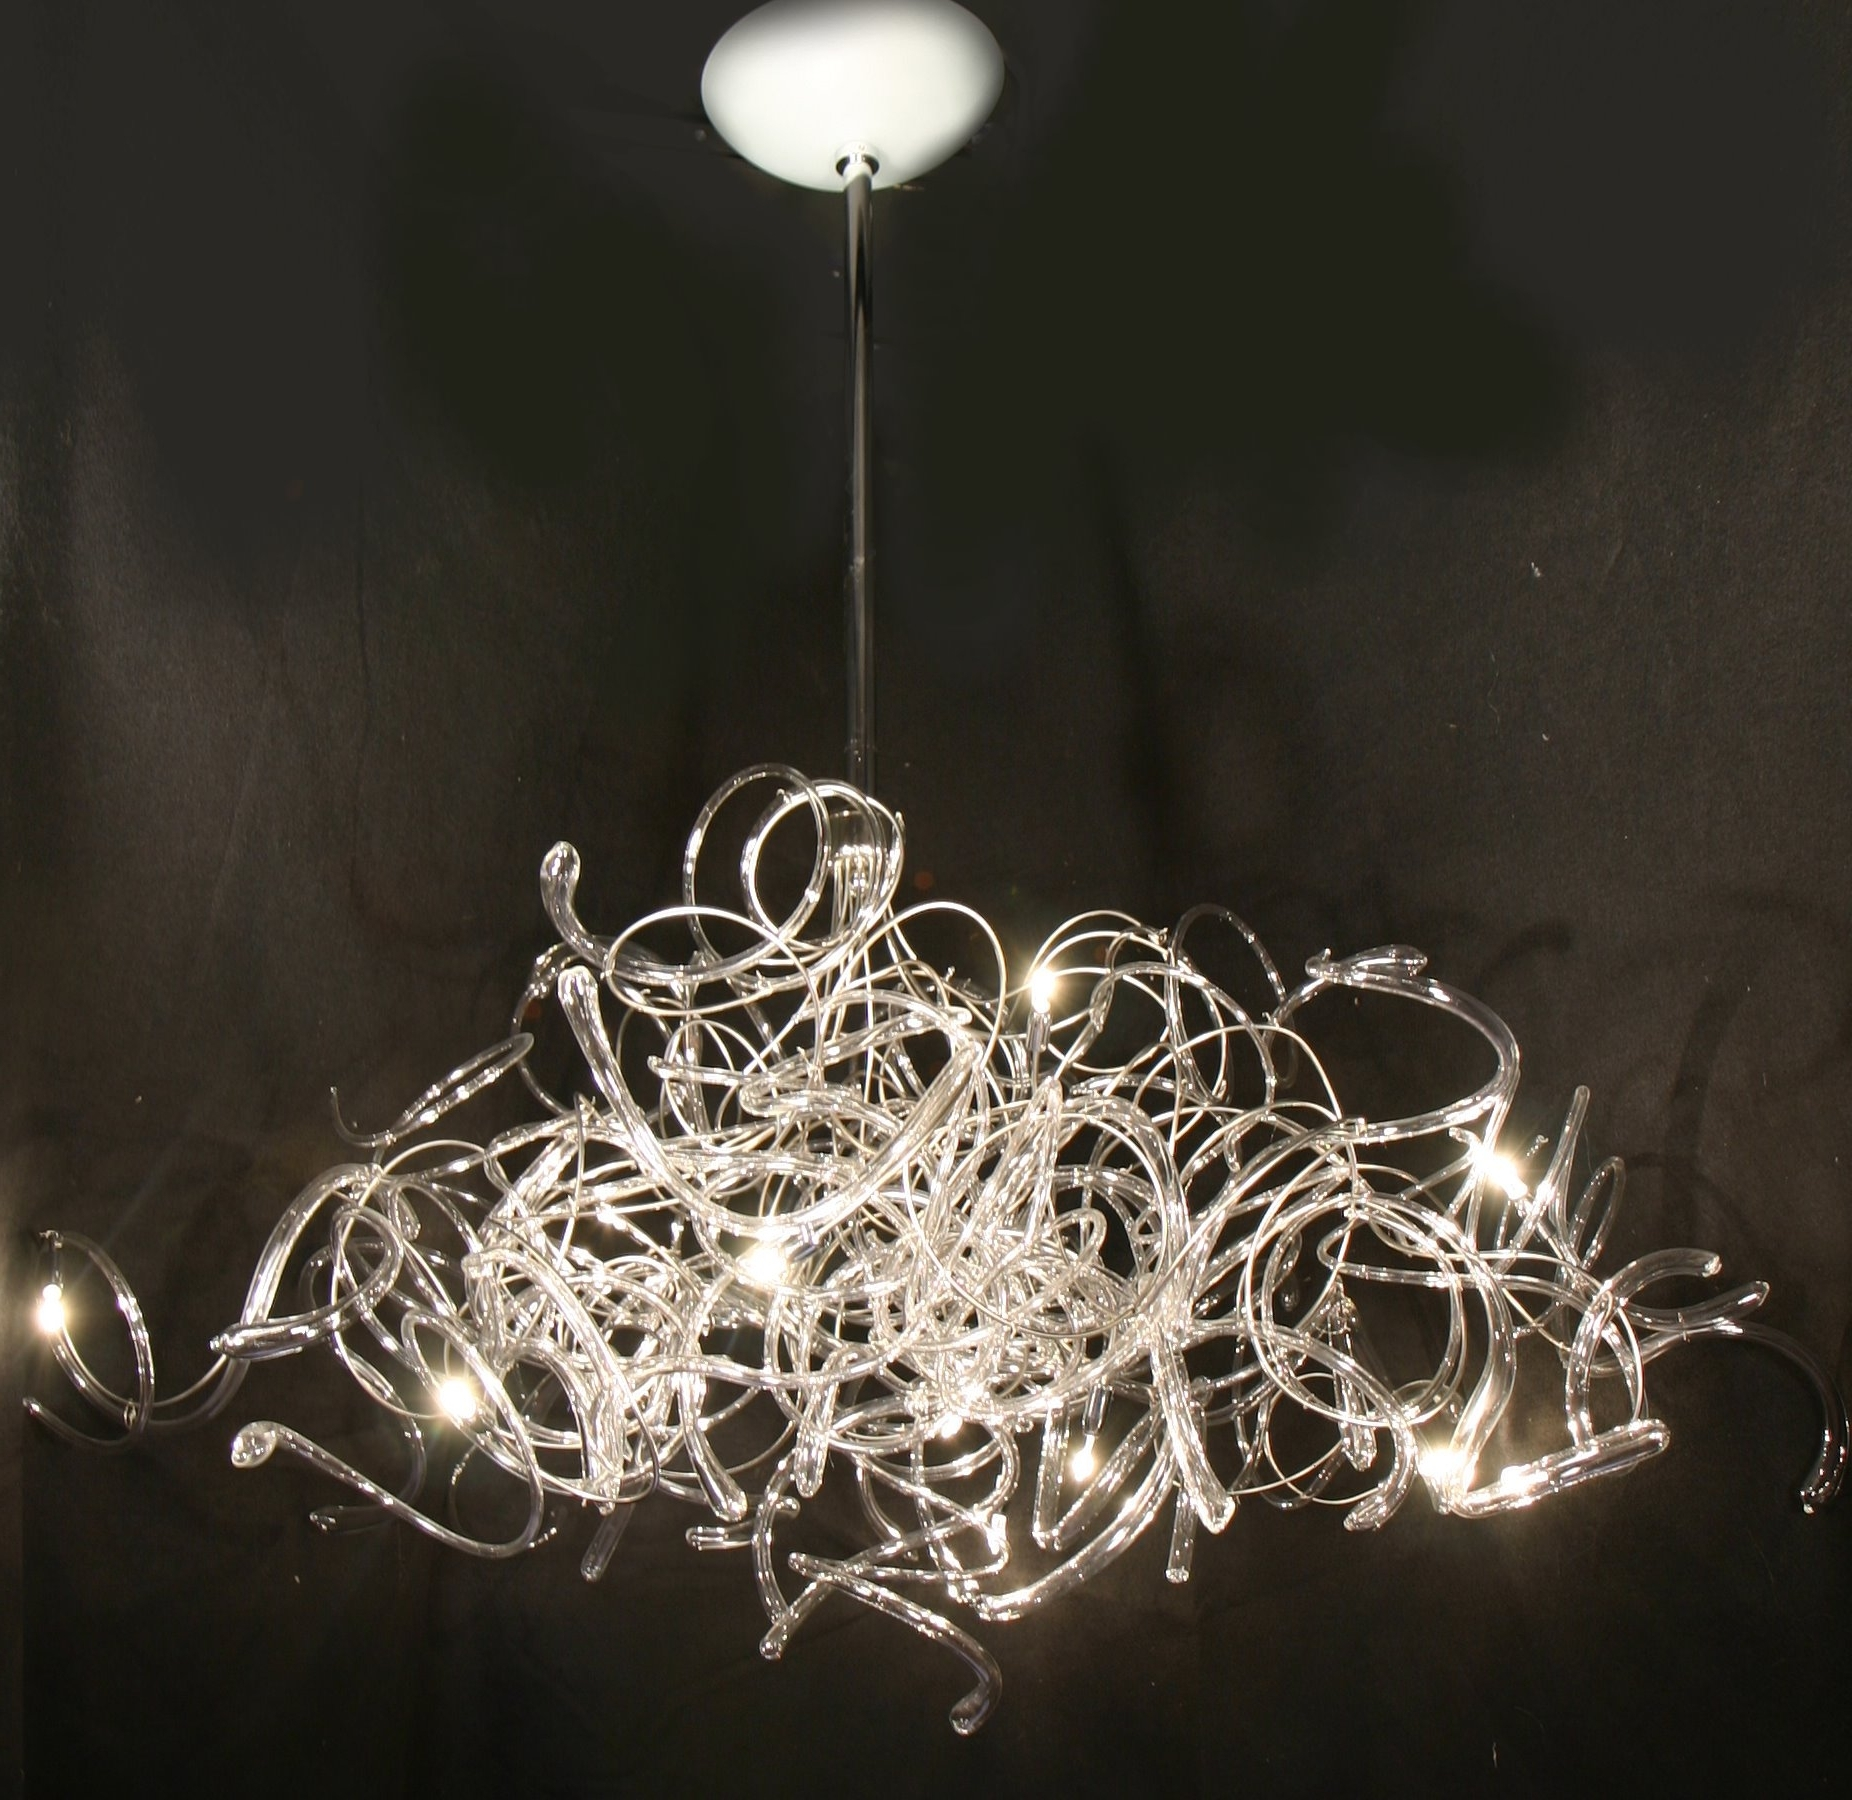 Ultra Modern Chandelier Throughout Fashionable Ultra Modern Chandelier Lighting – Musethecollective (View 13 of 15)